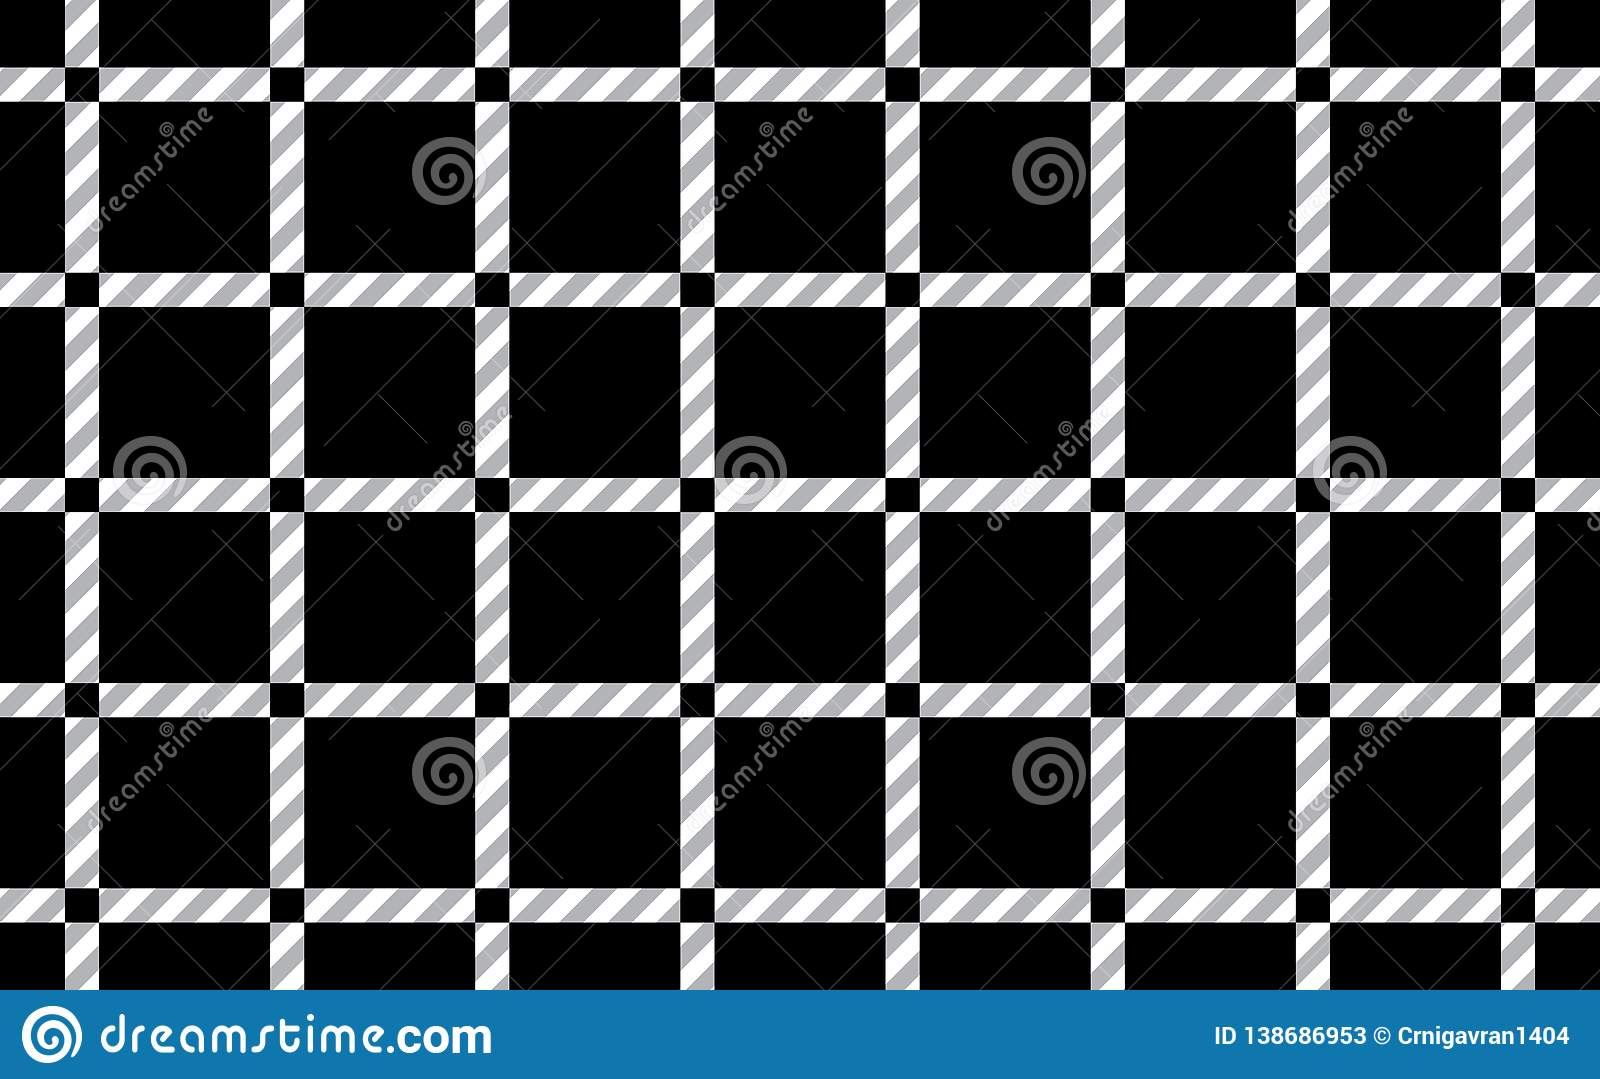 Pattern of tablecloths in black and white.Fabric Texture Background.Vector.-EPS-10